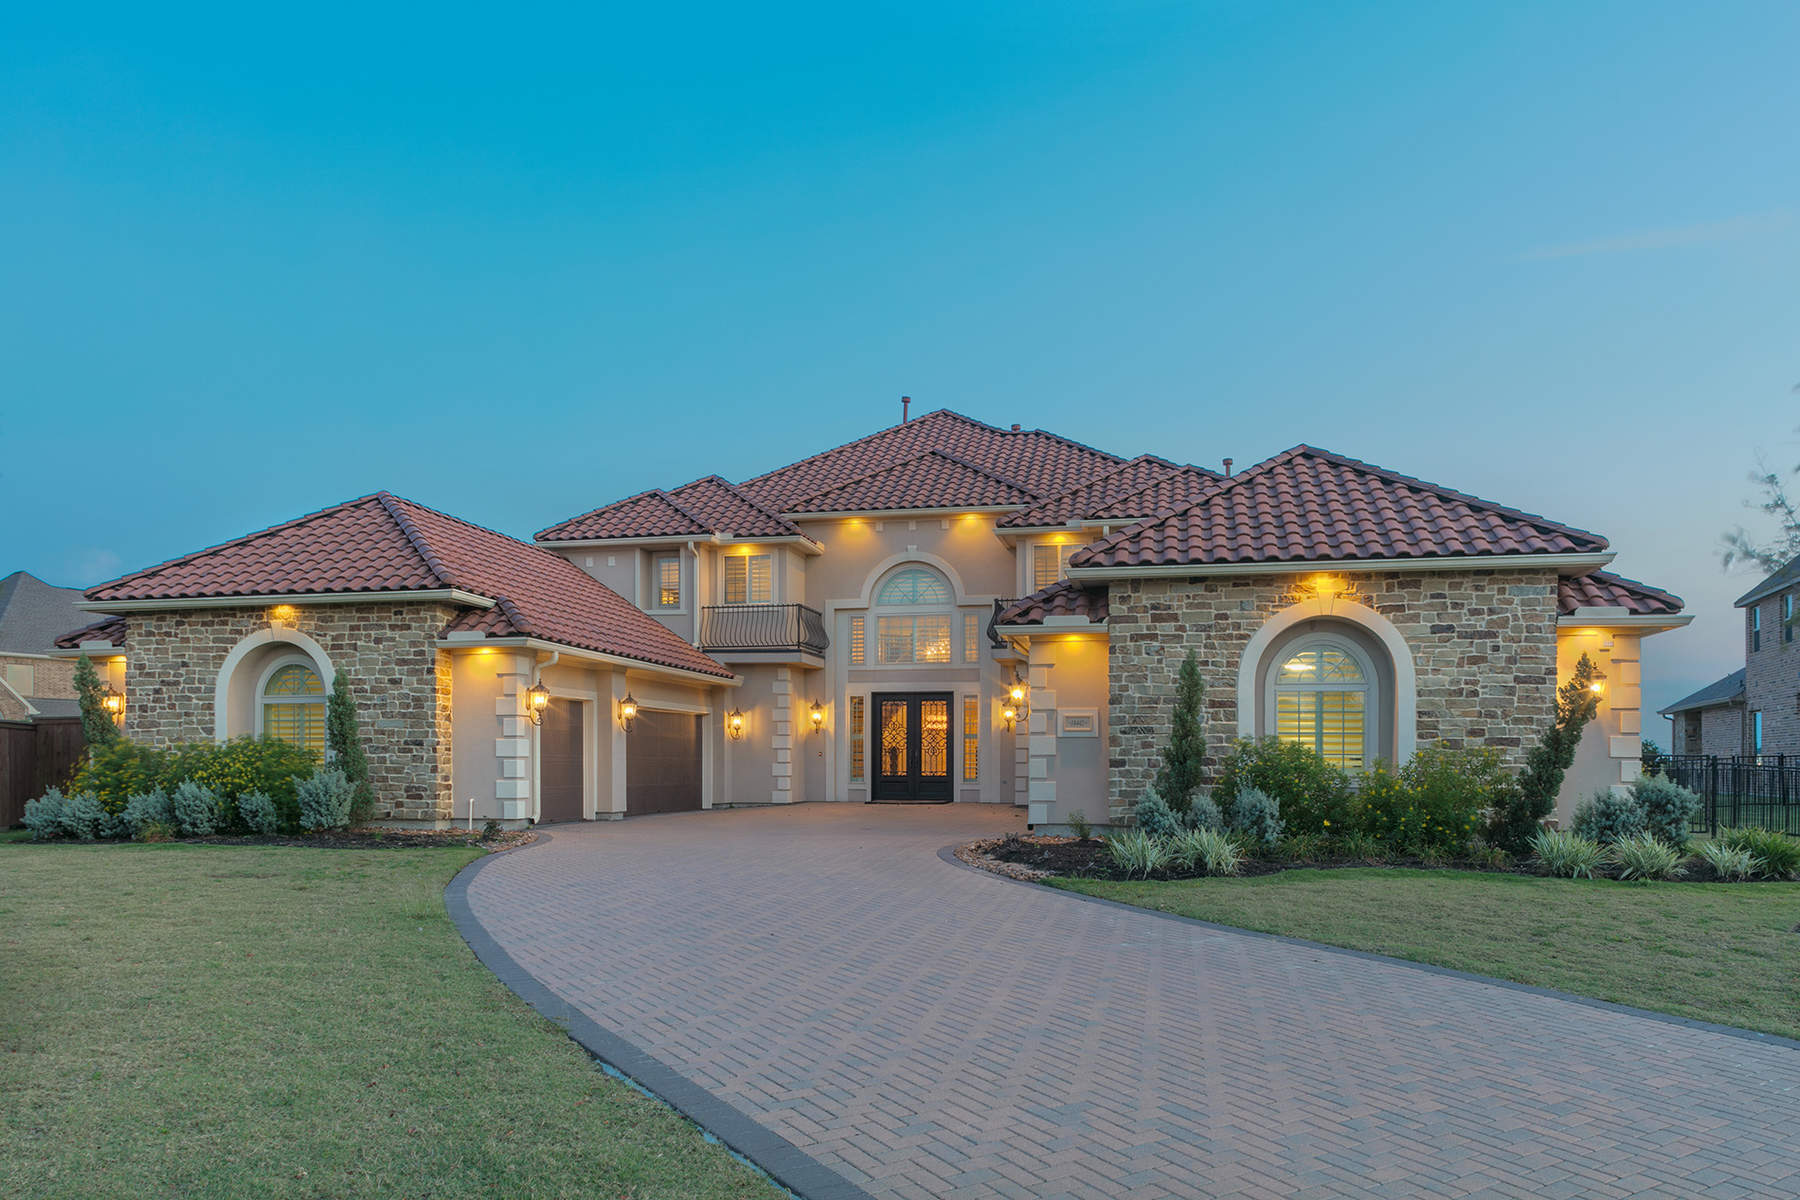 Single Family Home for Sale at 18442 Driftwood Shores Court 18442 Driftwood Shores Court Cypress, Texas 77433 United States